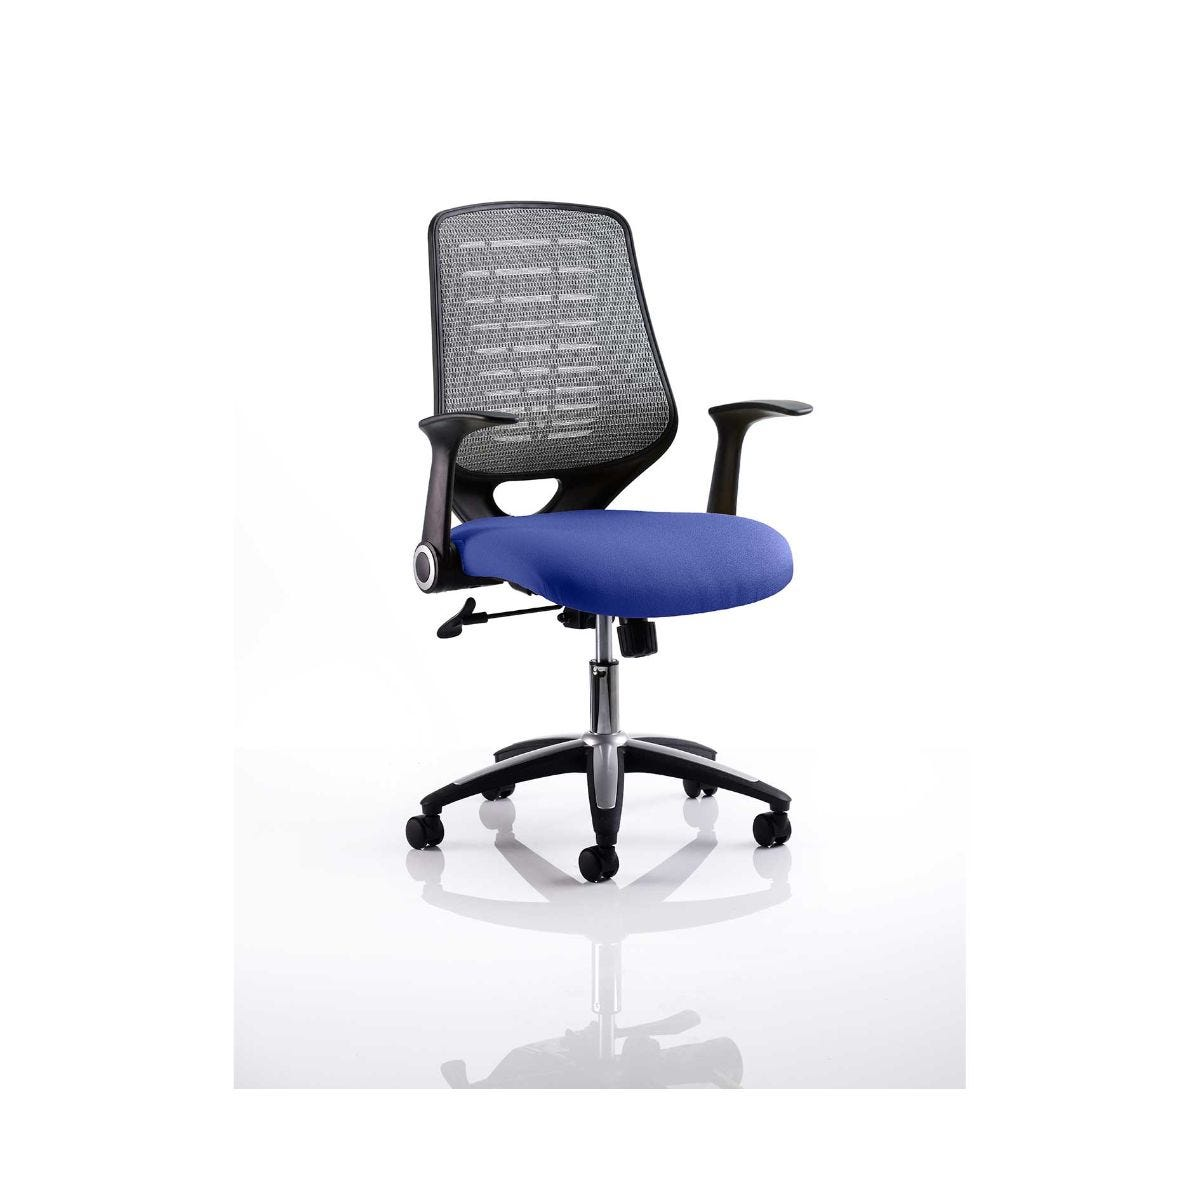 Relay Mesh Back Office Chair Silver, Stevia